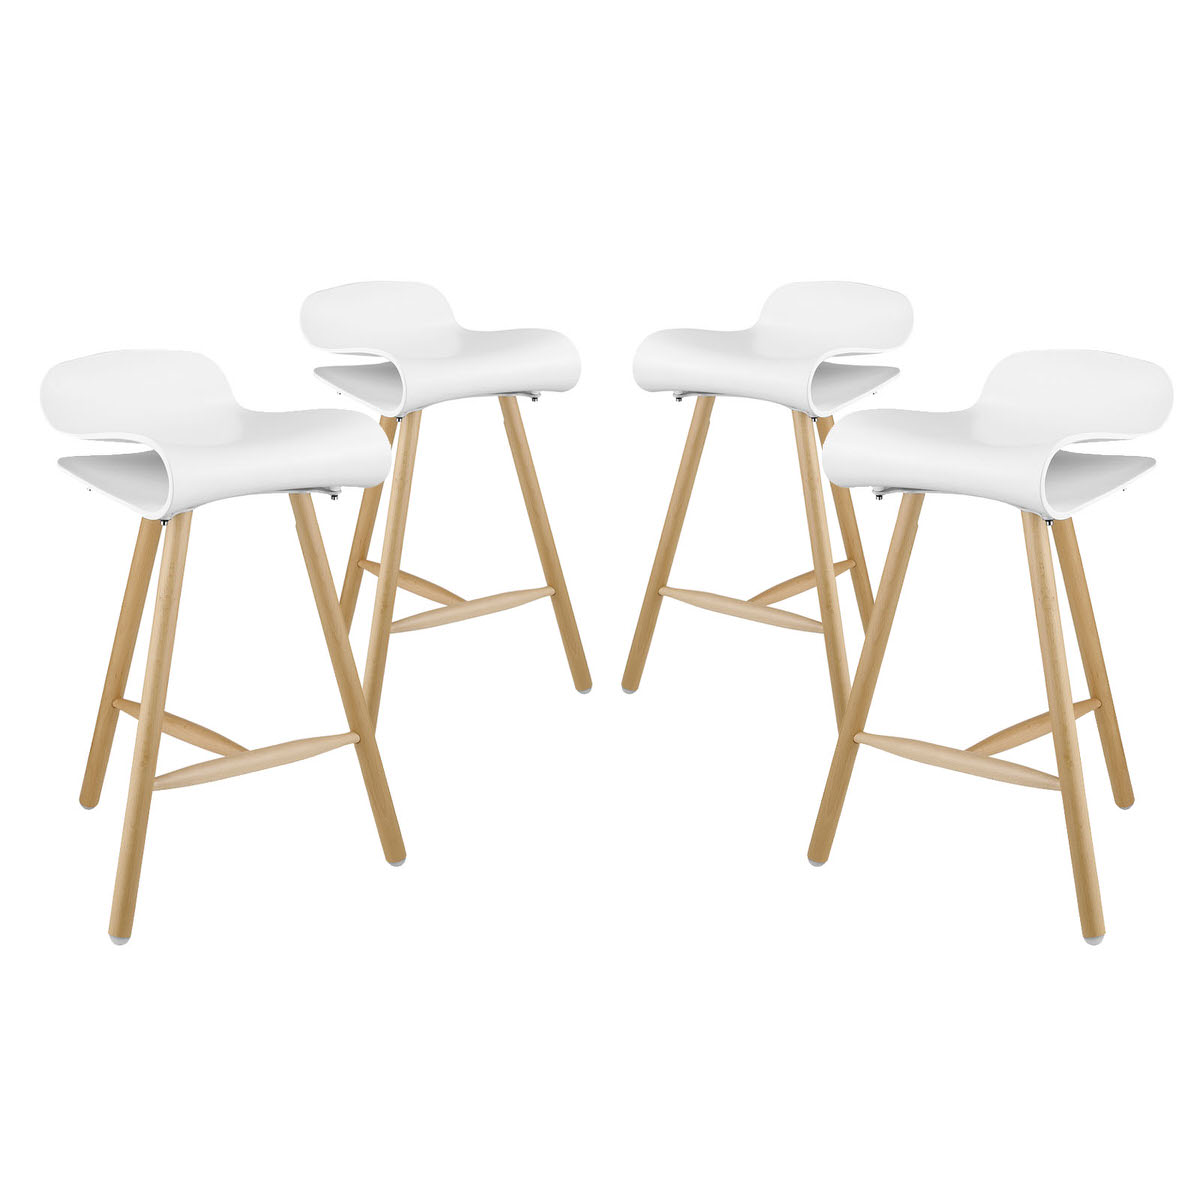 Prime Clip Bar Stool Set Of 4 White By Modern Living Gamerscity Chair Design For Home Gamerscityorg